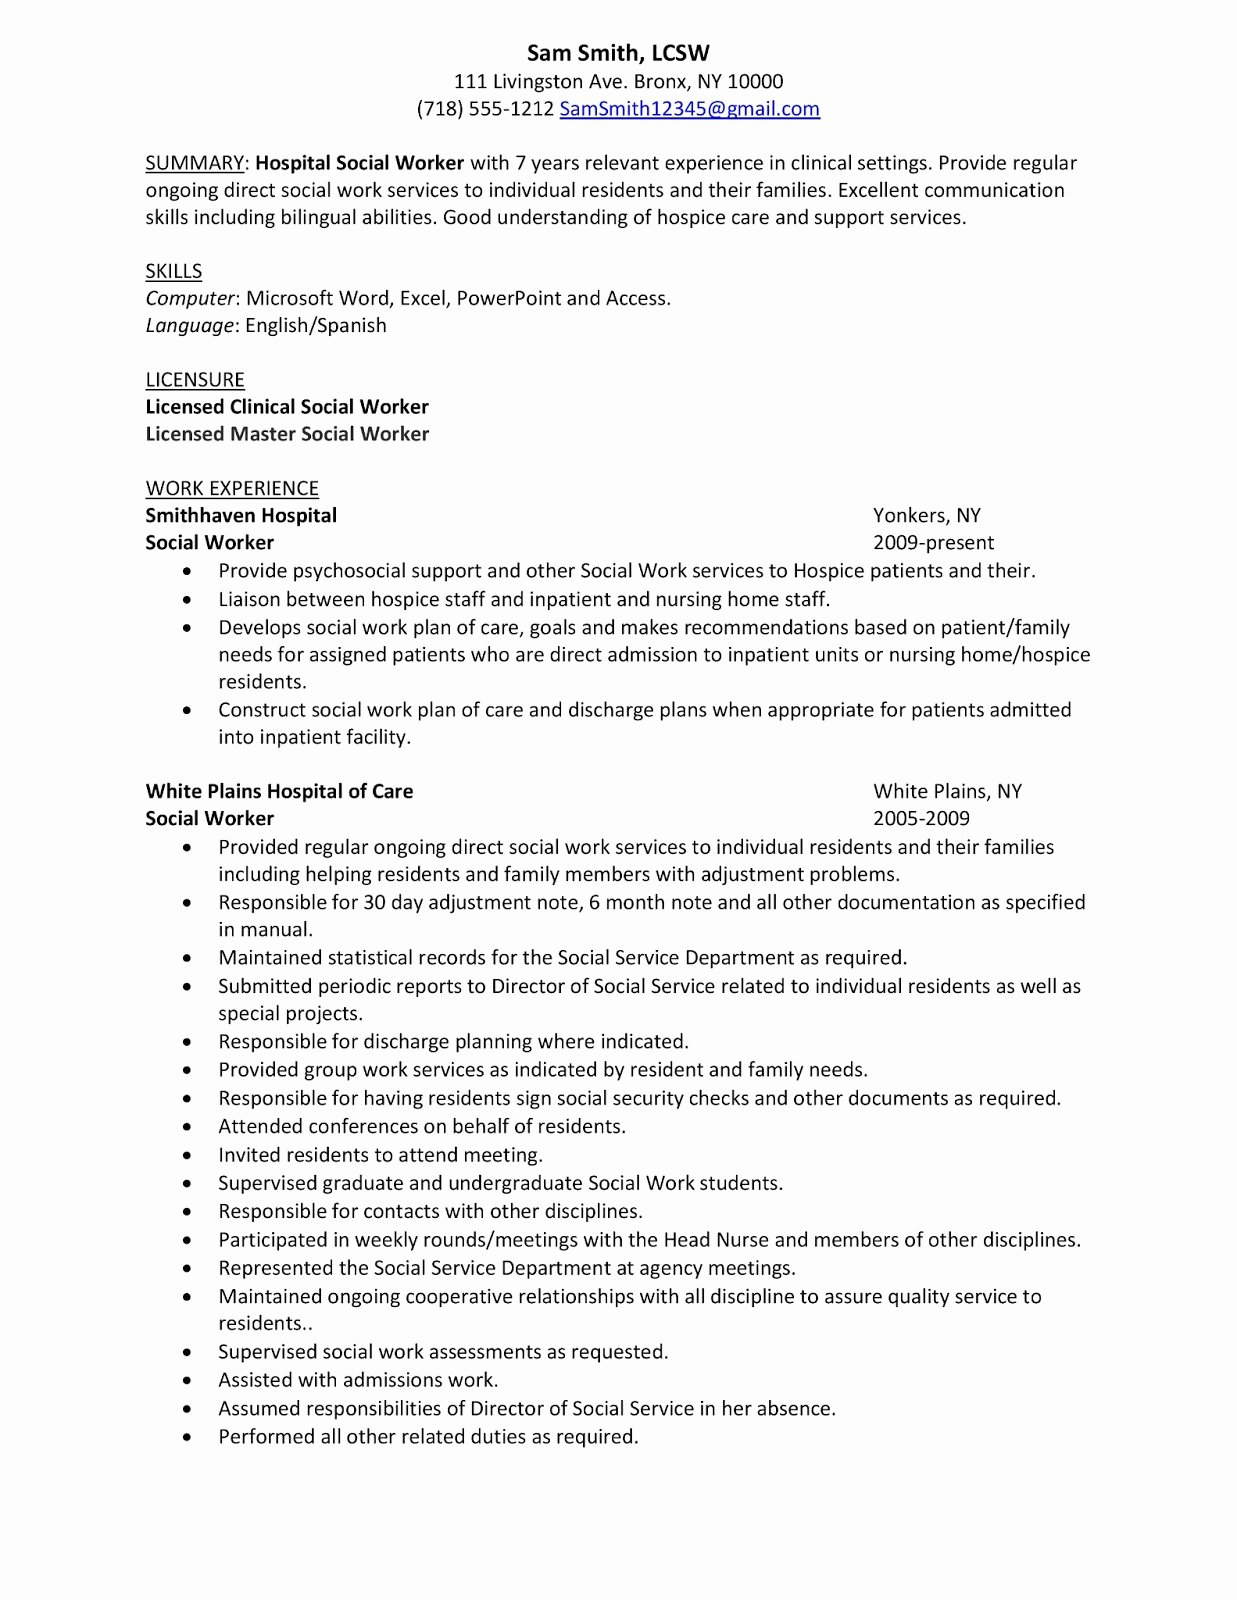 Entry Level social Work Resume New social Work Resume Objective Statement Samplebusinessresume Samplebusinessresume